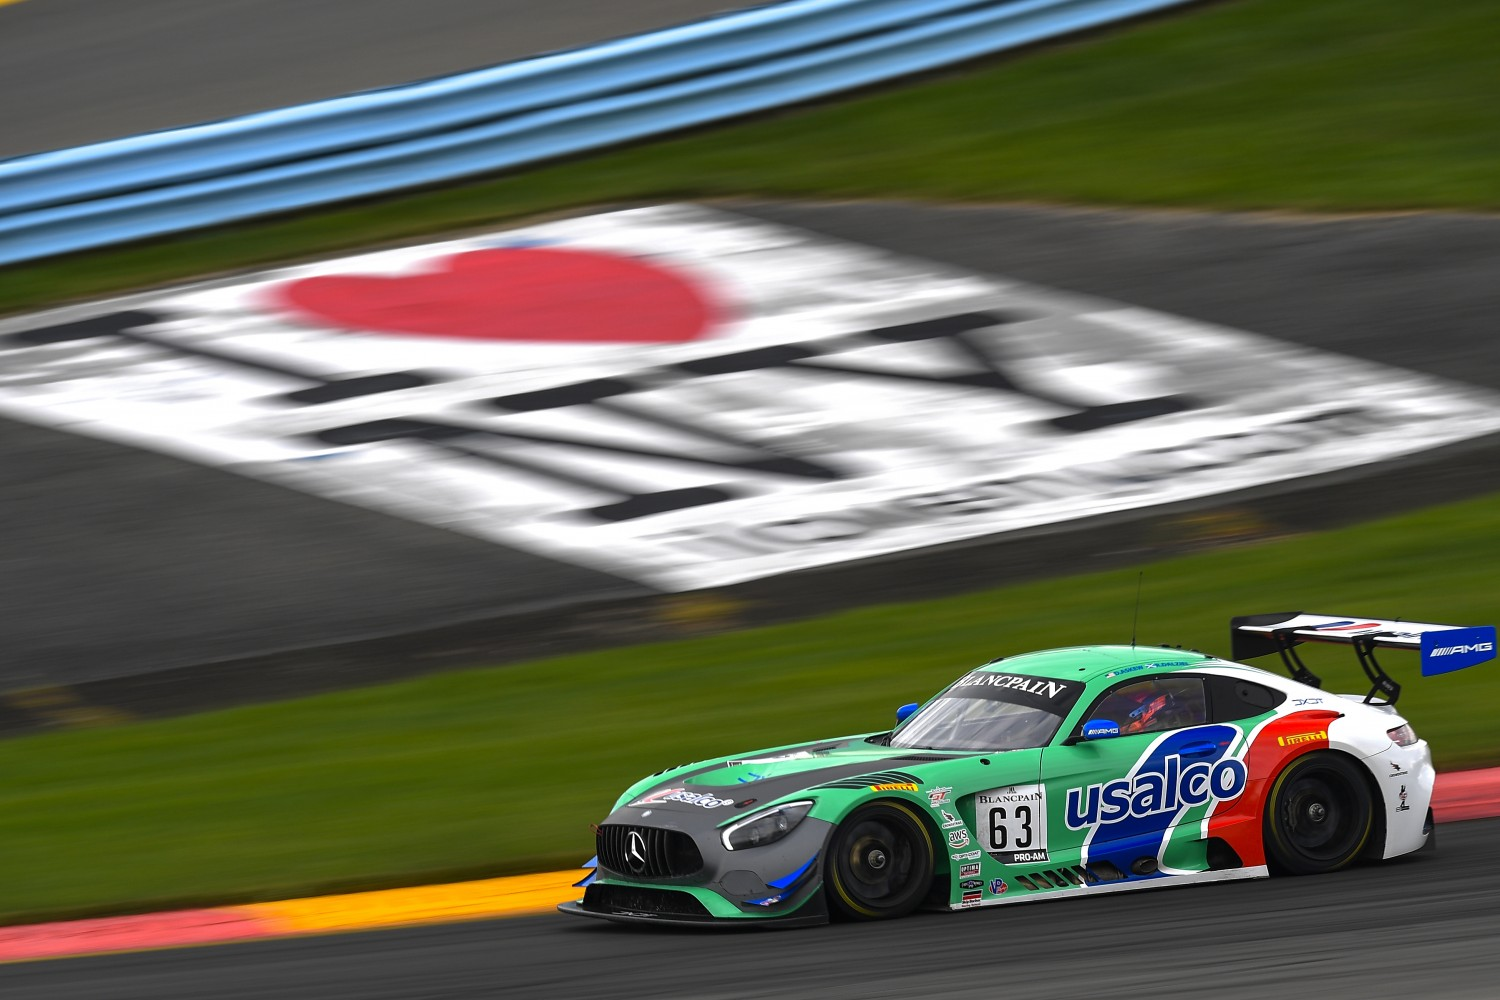 #63 Mercedes-AMG GT3 of David Askew and Ryan Dalziel with DXDT Racing  Watkins Glen World Challenge America , Watkins Glen NY   | Gavin Baker/SRO